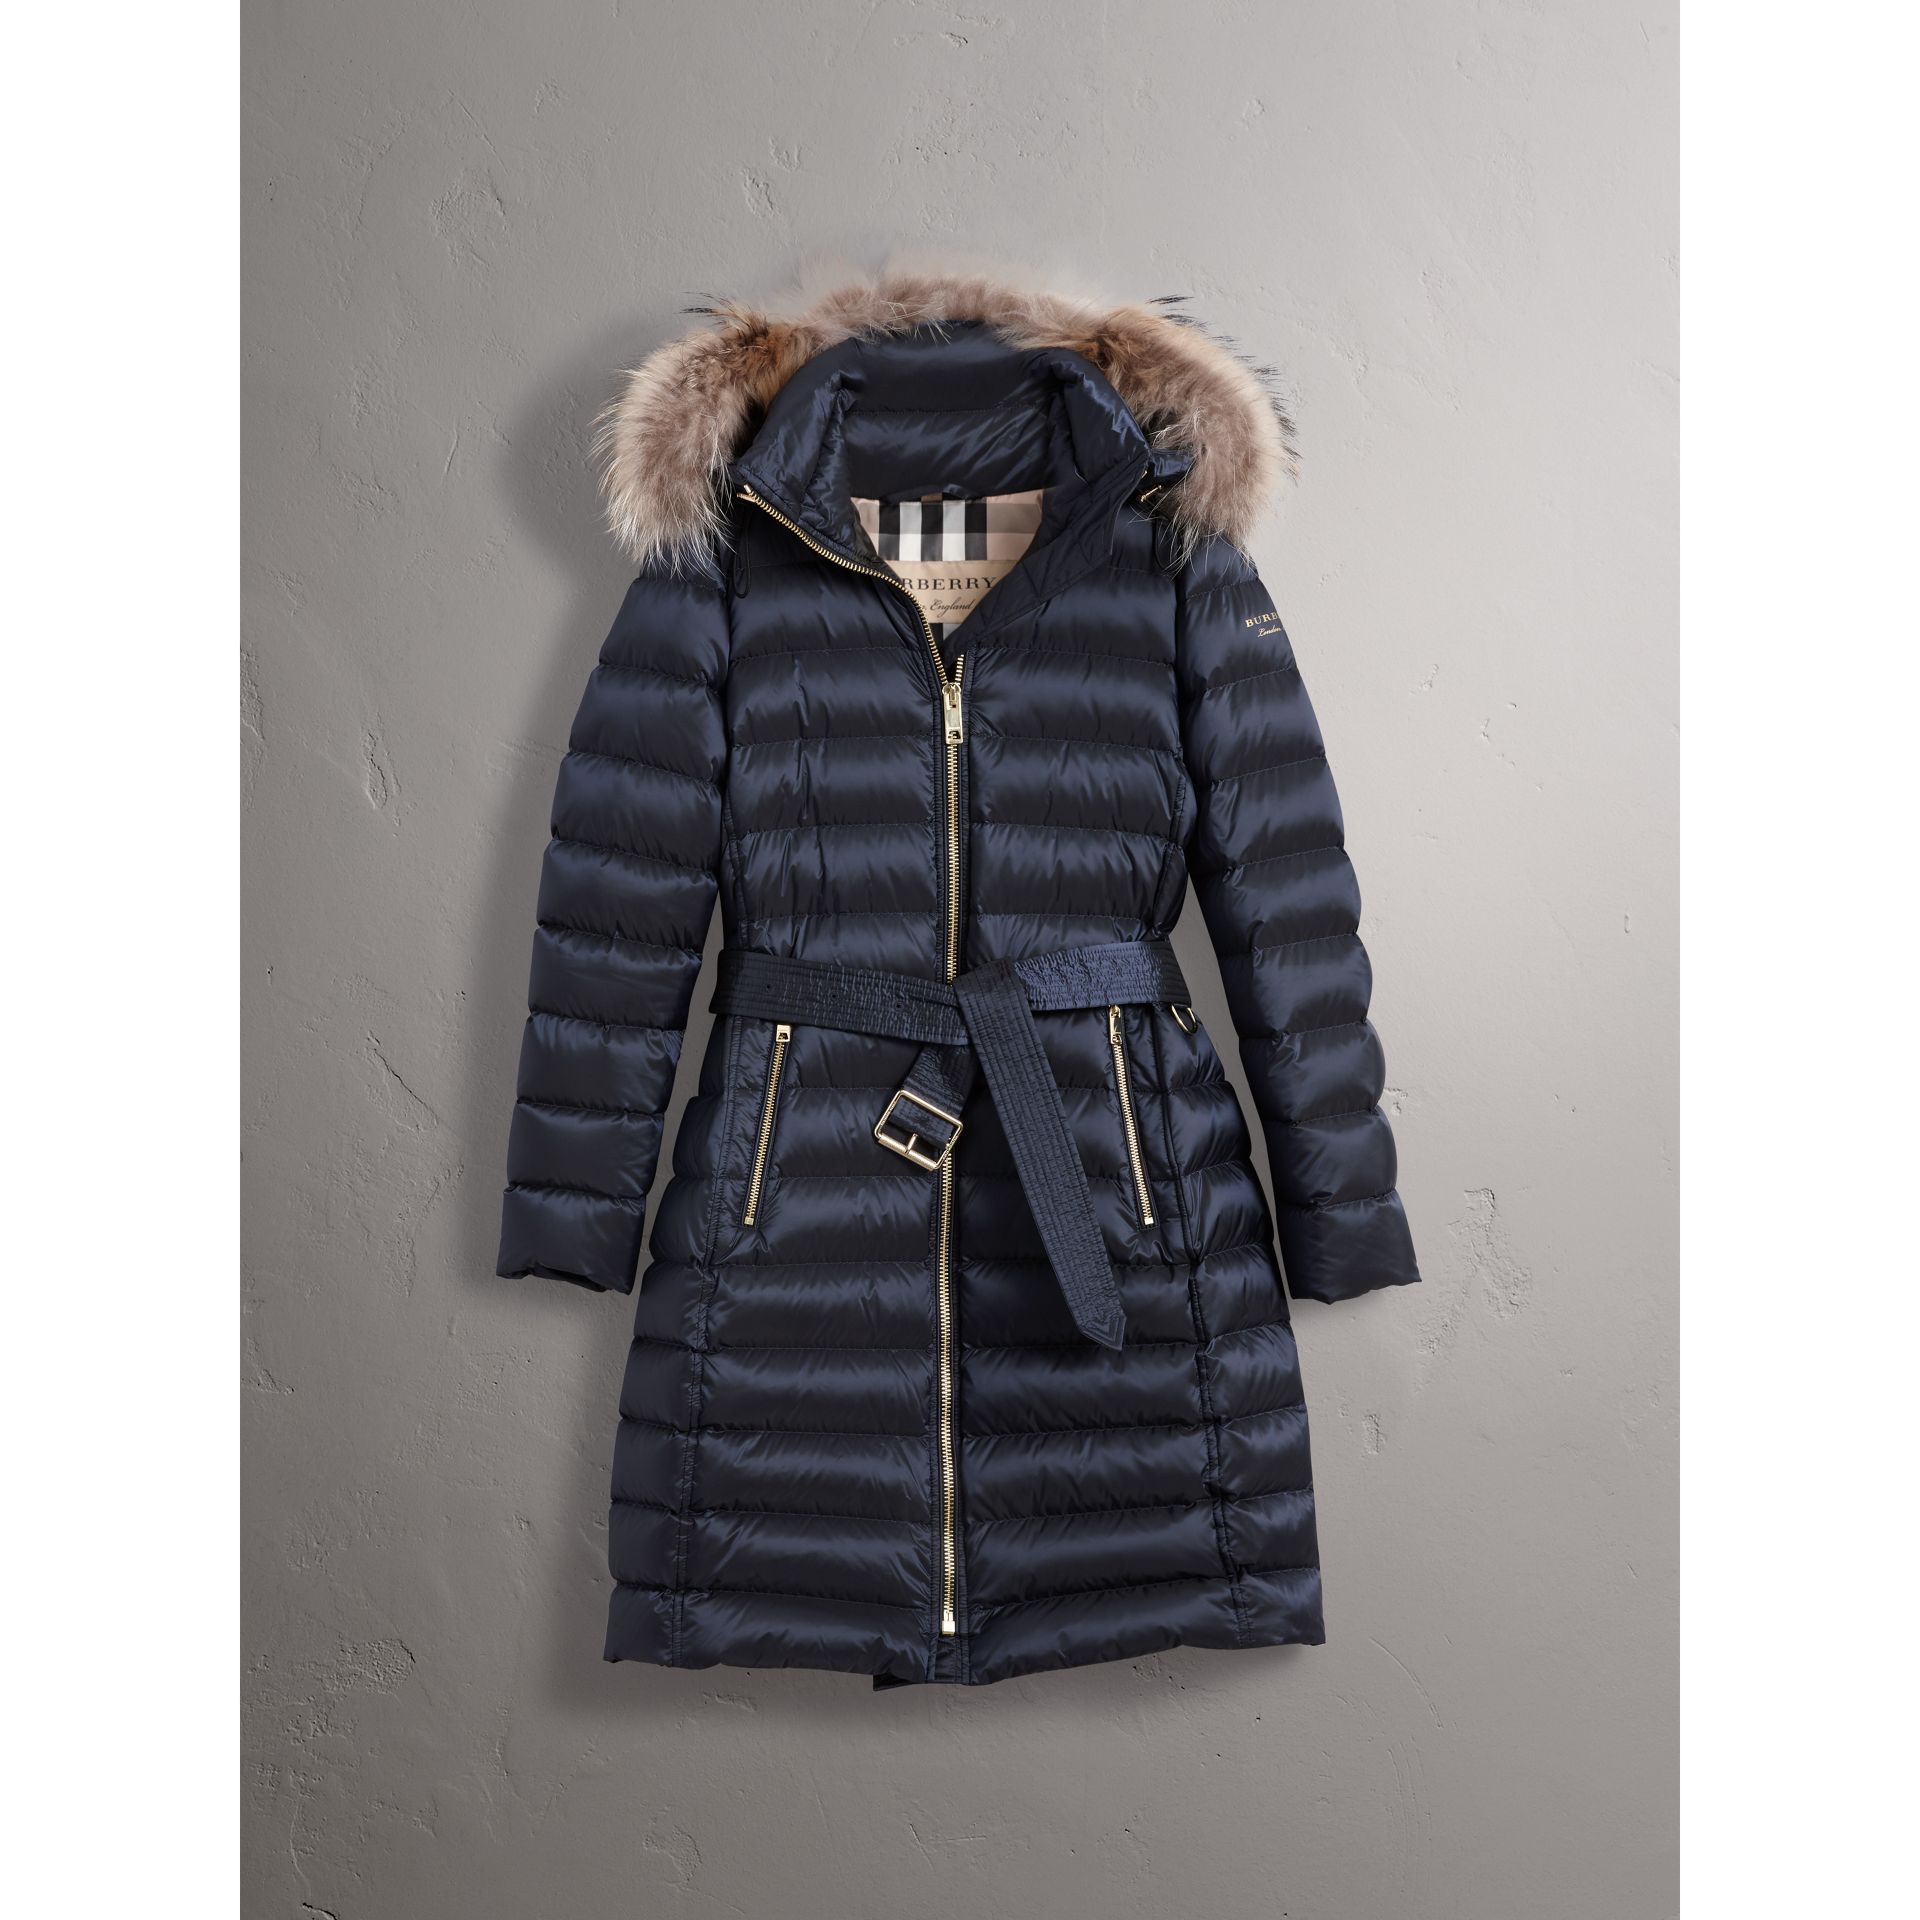 Detachable Fur Trim Down-filled Puffer Coat with Hood in Navy - Women | Burberry United Kingdom - gallery image 3